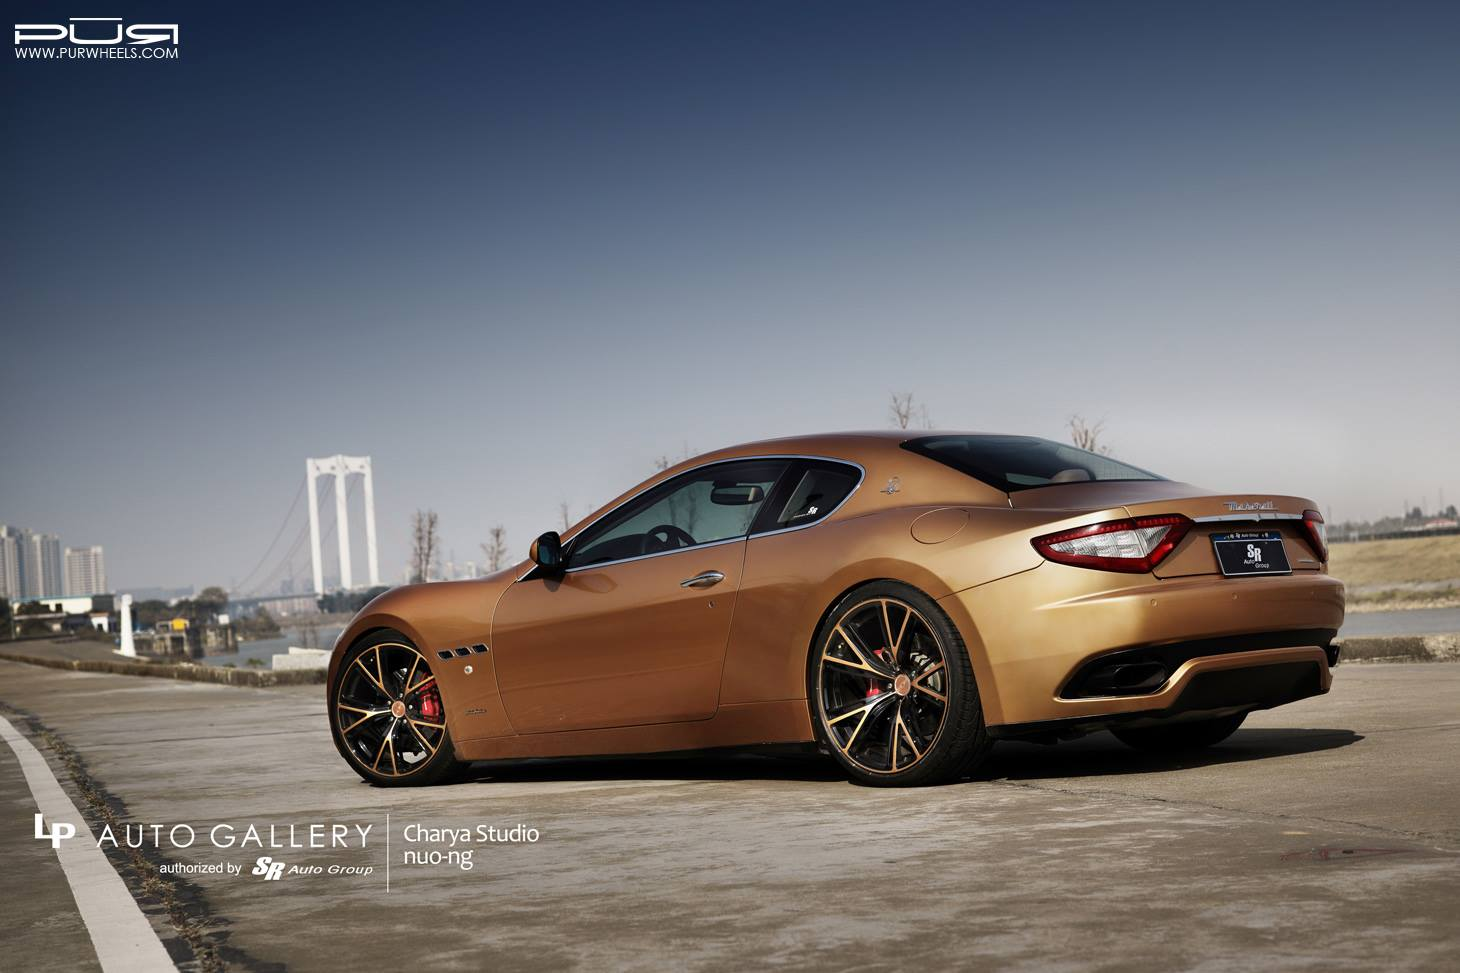 golden maserati granturismo lowered on matching pur wheels gtspirit. Black Bedroom Furniture Sets. Home Design Ideas